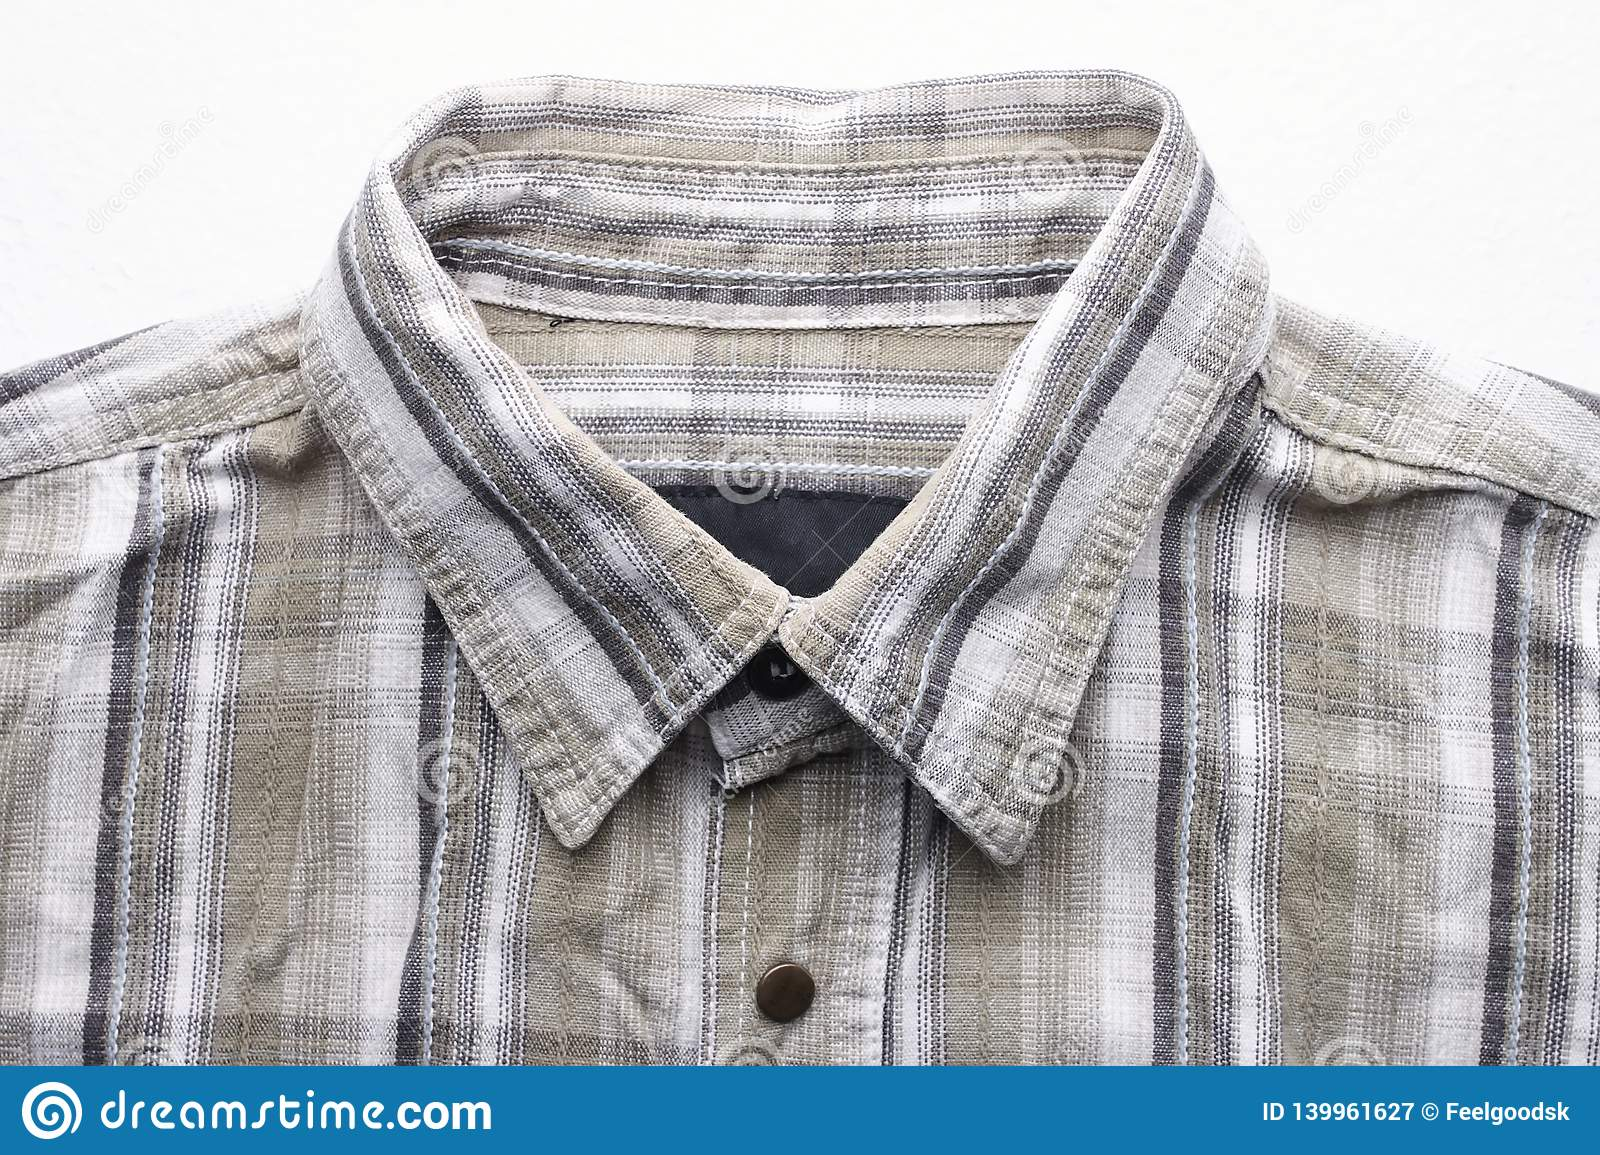 Close Up Part Of A Shirt From Hemp Fabric Casual Man S Shirt With Pattern Wrinkled Texture From Hemp And Cotton Background Stock Image Image Of Mens Clothes 139961627